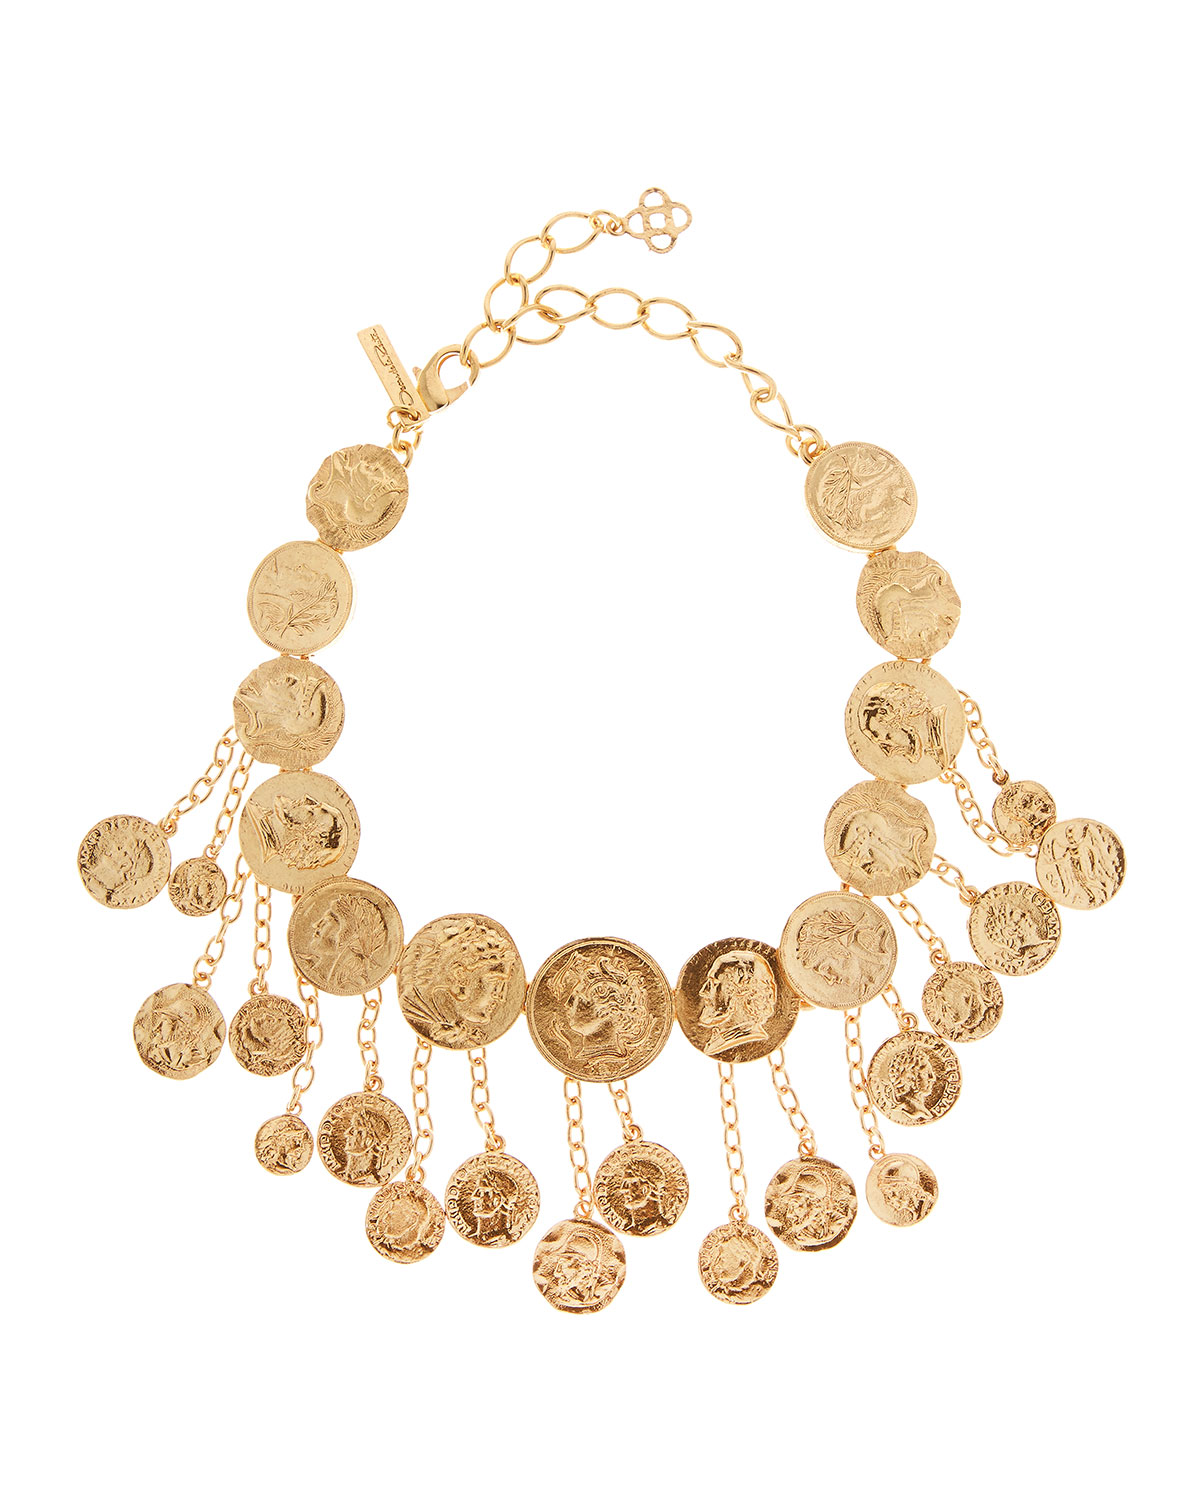 Oscar De La Renta Accessories COIN SHAKER NECKLACE